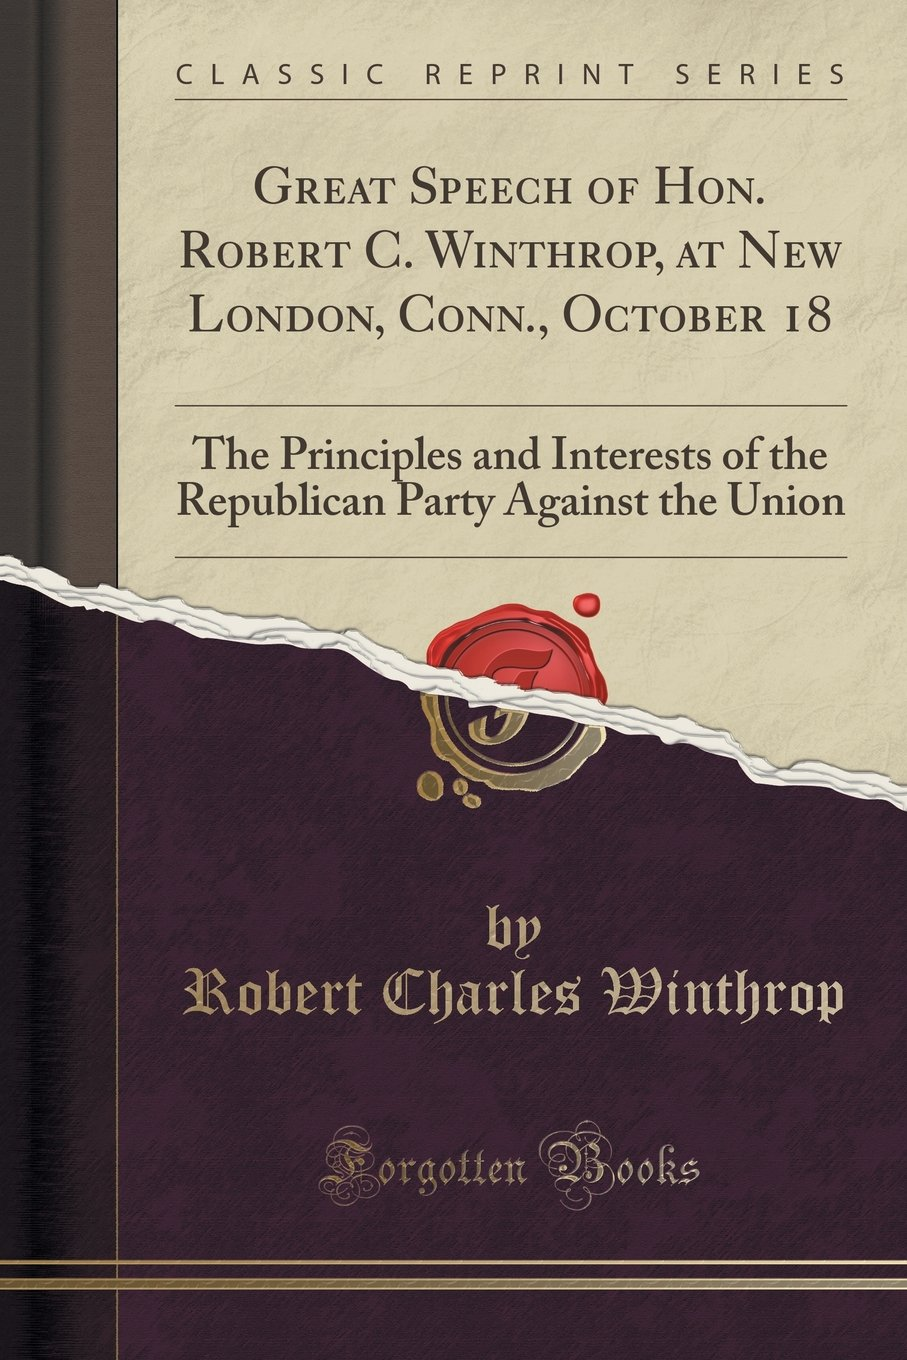 Read Online Great Speech of Hon. Robert C. Winthrop, at New London, Conn., October 18: The Principles and Interests of the Republican Party Against the Union (Classic Reprint) pdf epub